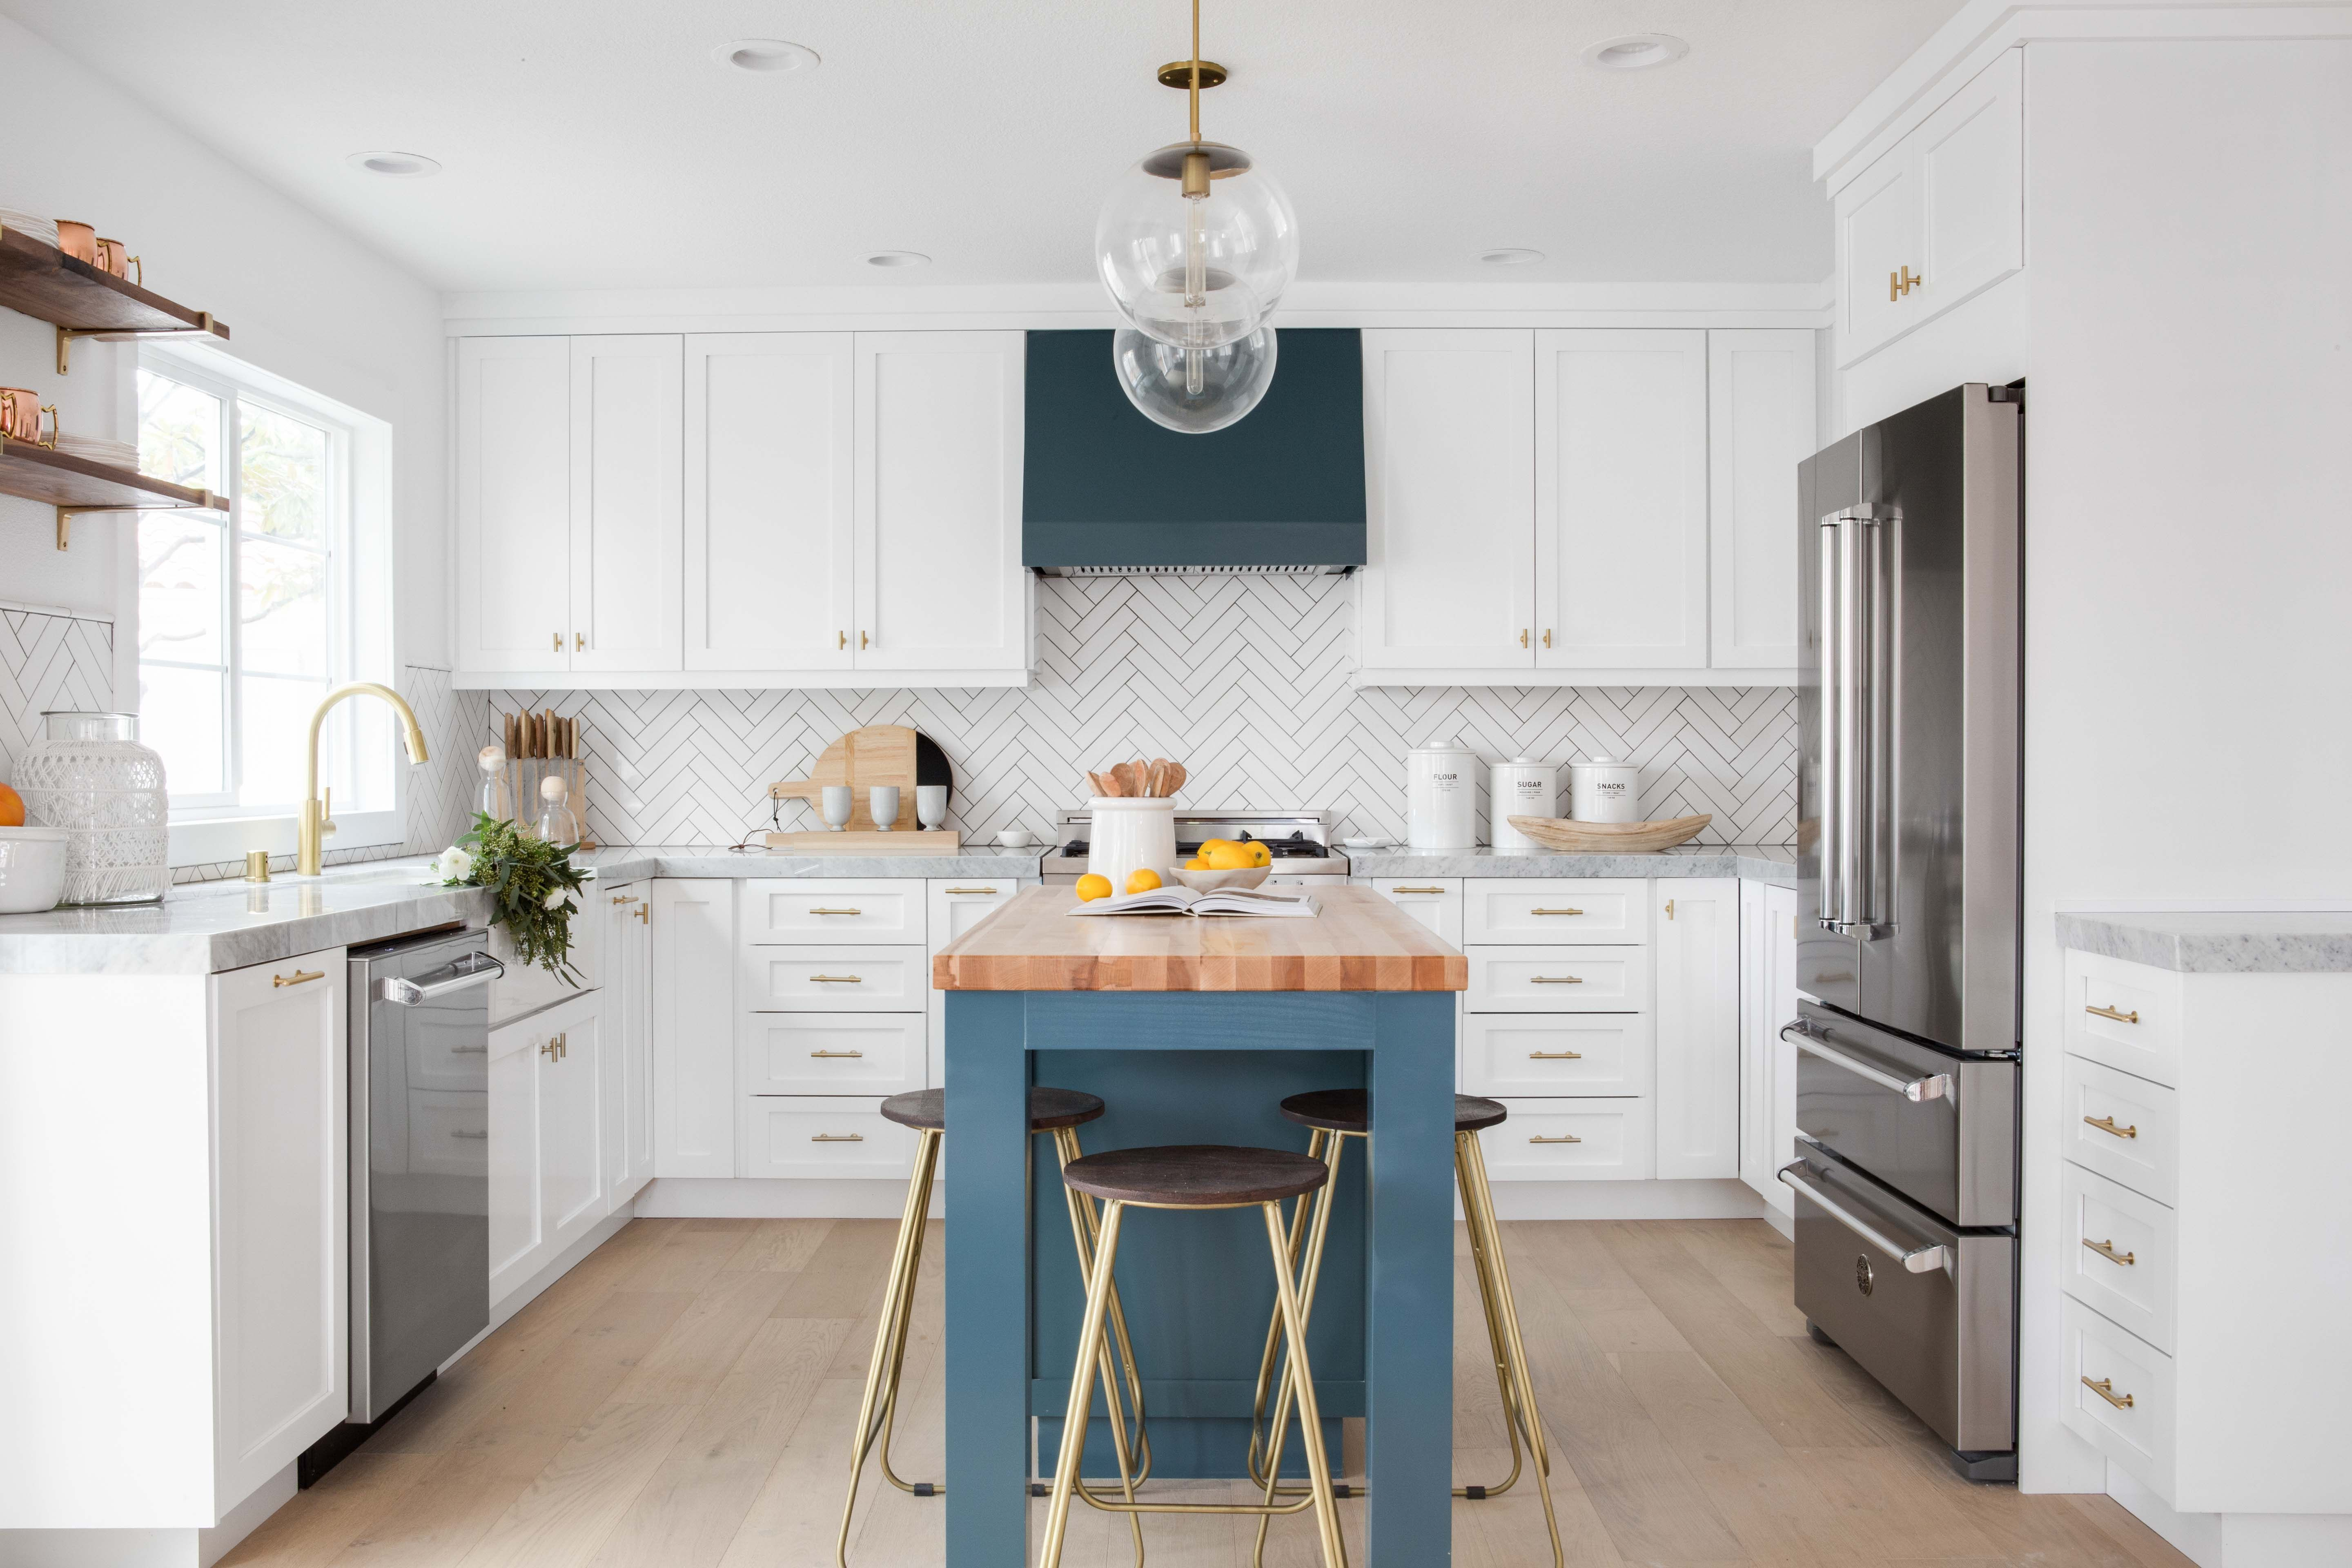 Kitchens With Herringbone Tile Backsplashes